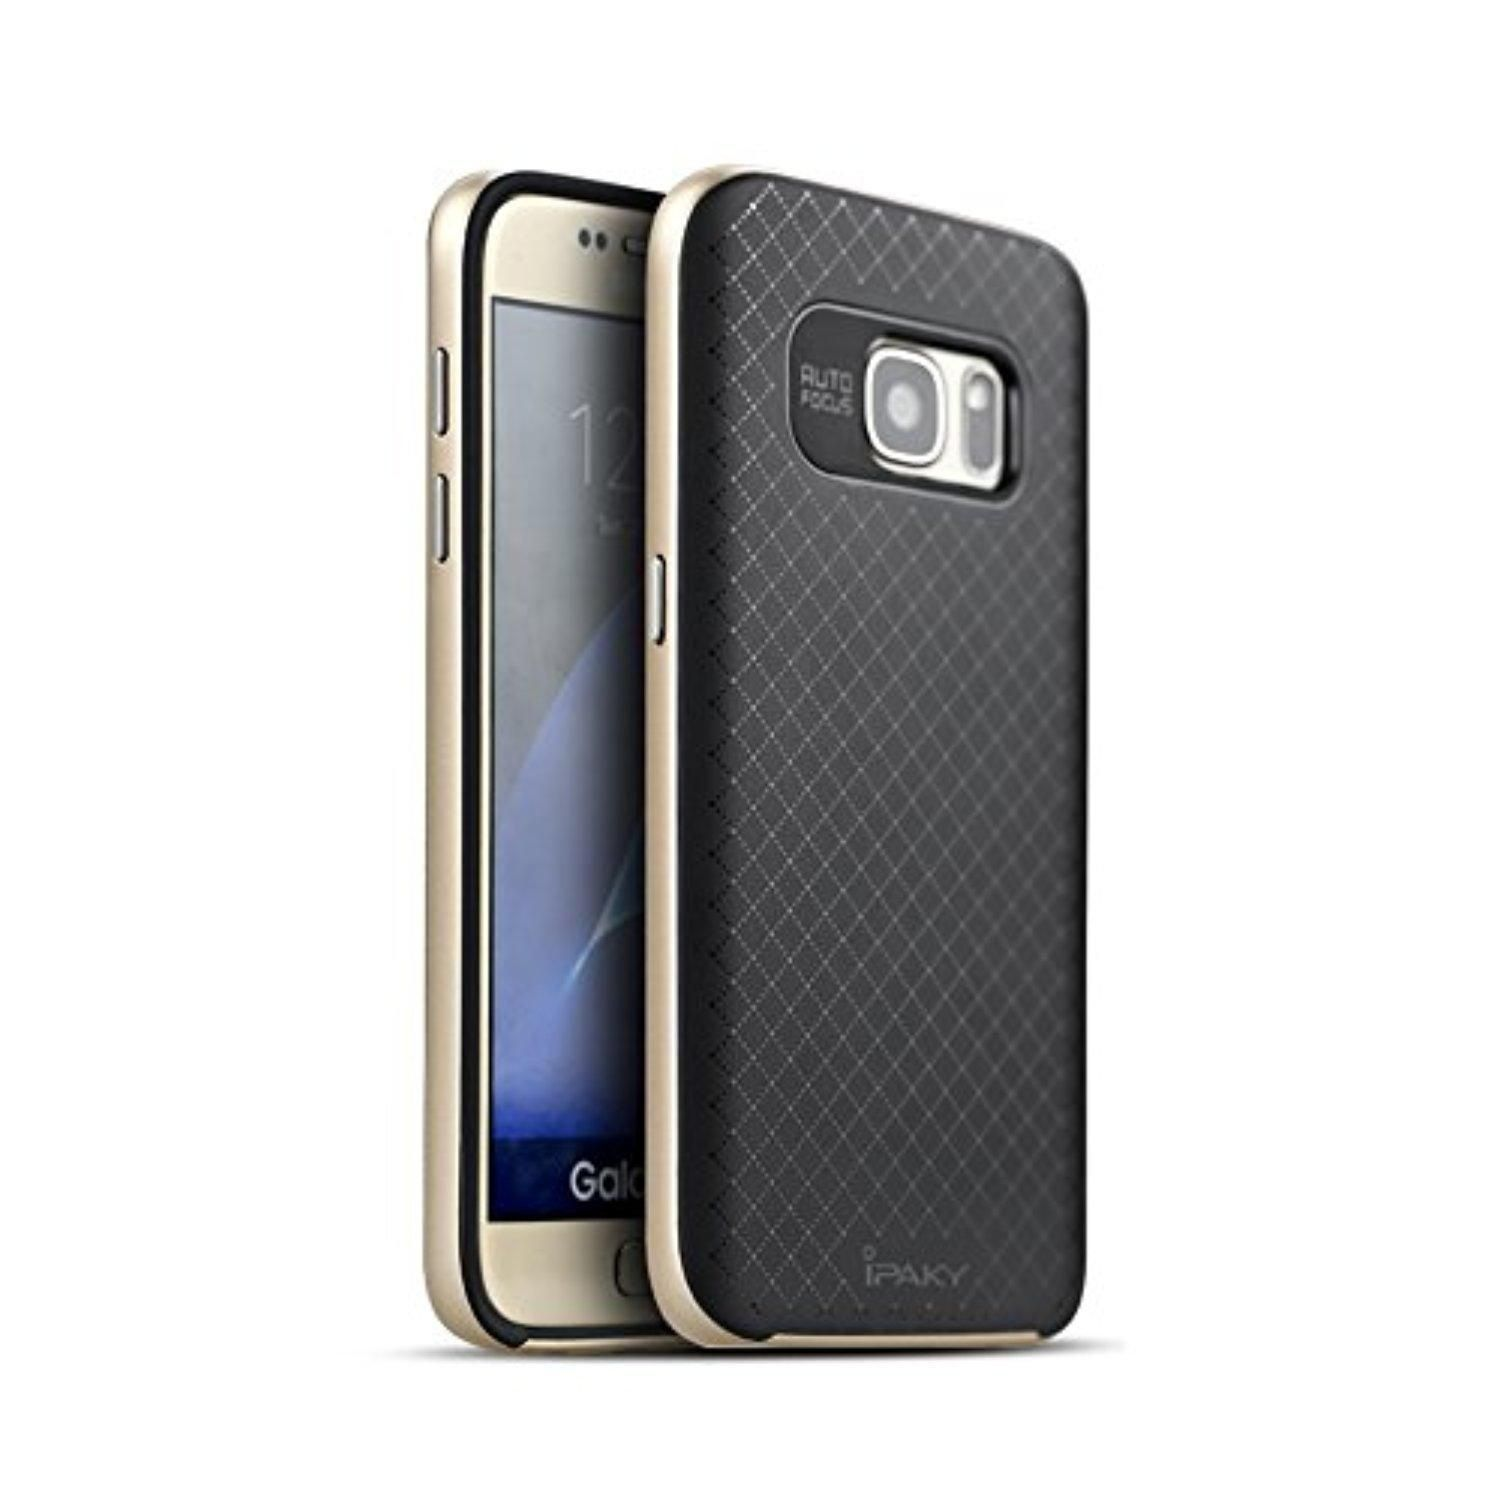 Galaxy S7 Case Rebex & iPaky Slim Fit Dual Layer Protection Case with Metallic Finish